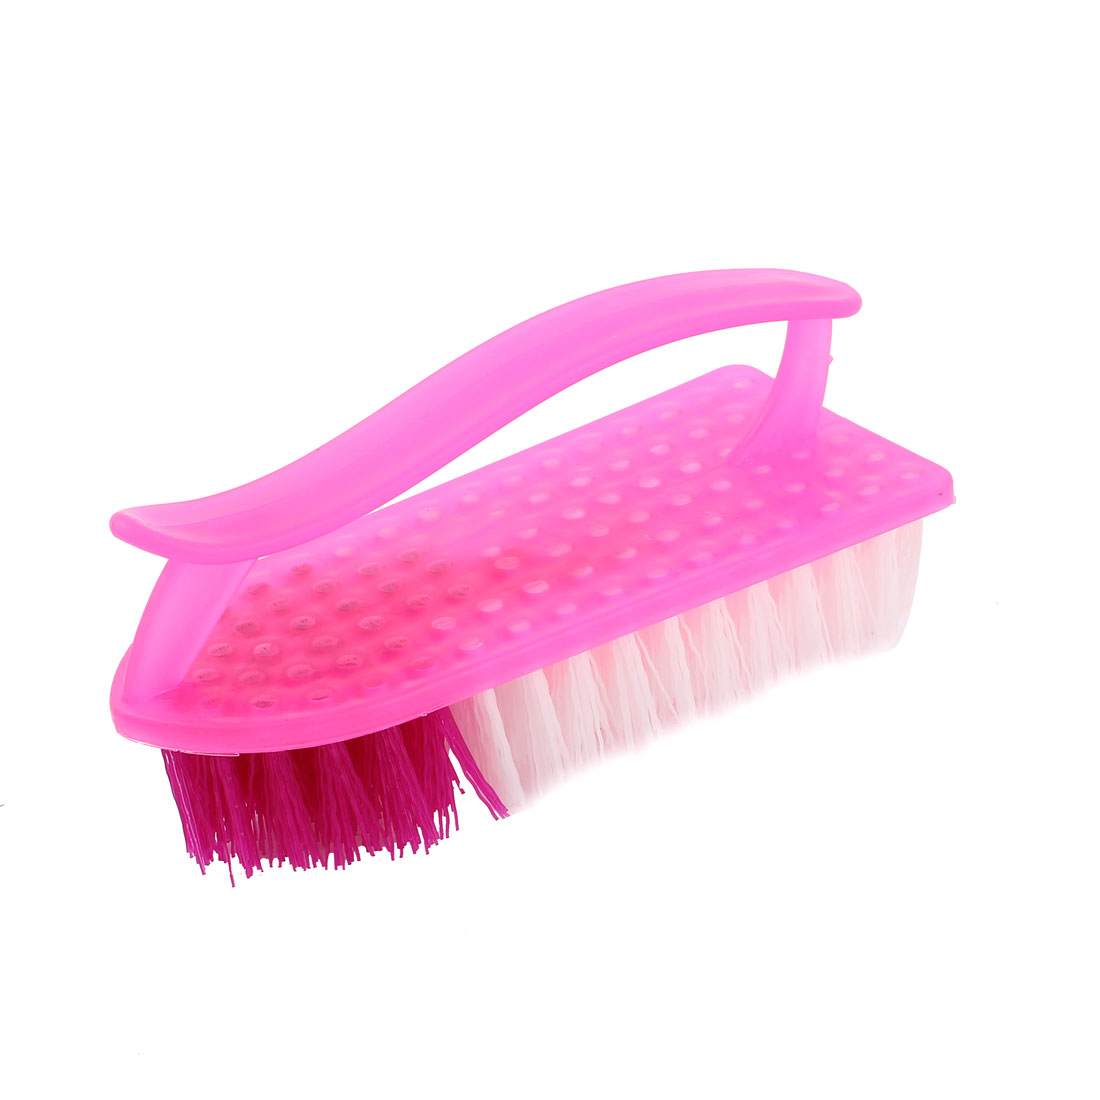 Household Plastic Handgrip Clothes Shoes Washing Scrubbing Brush Scrub Fuchsia